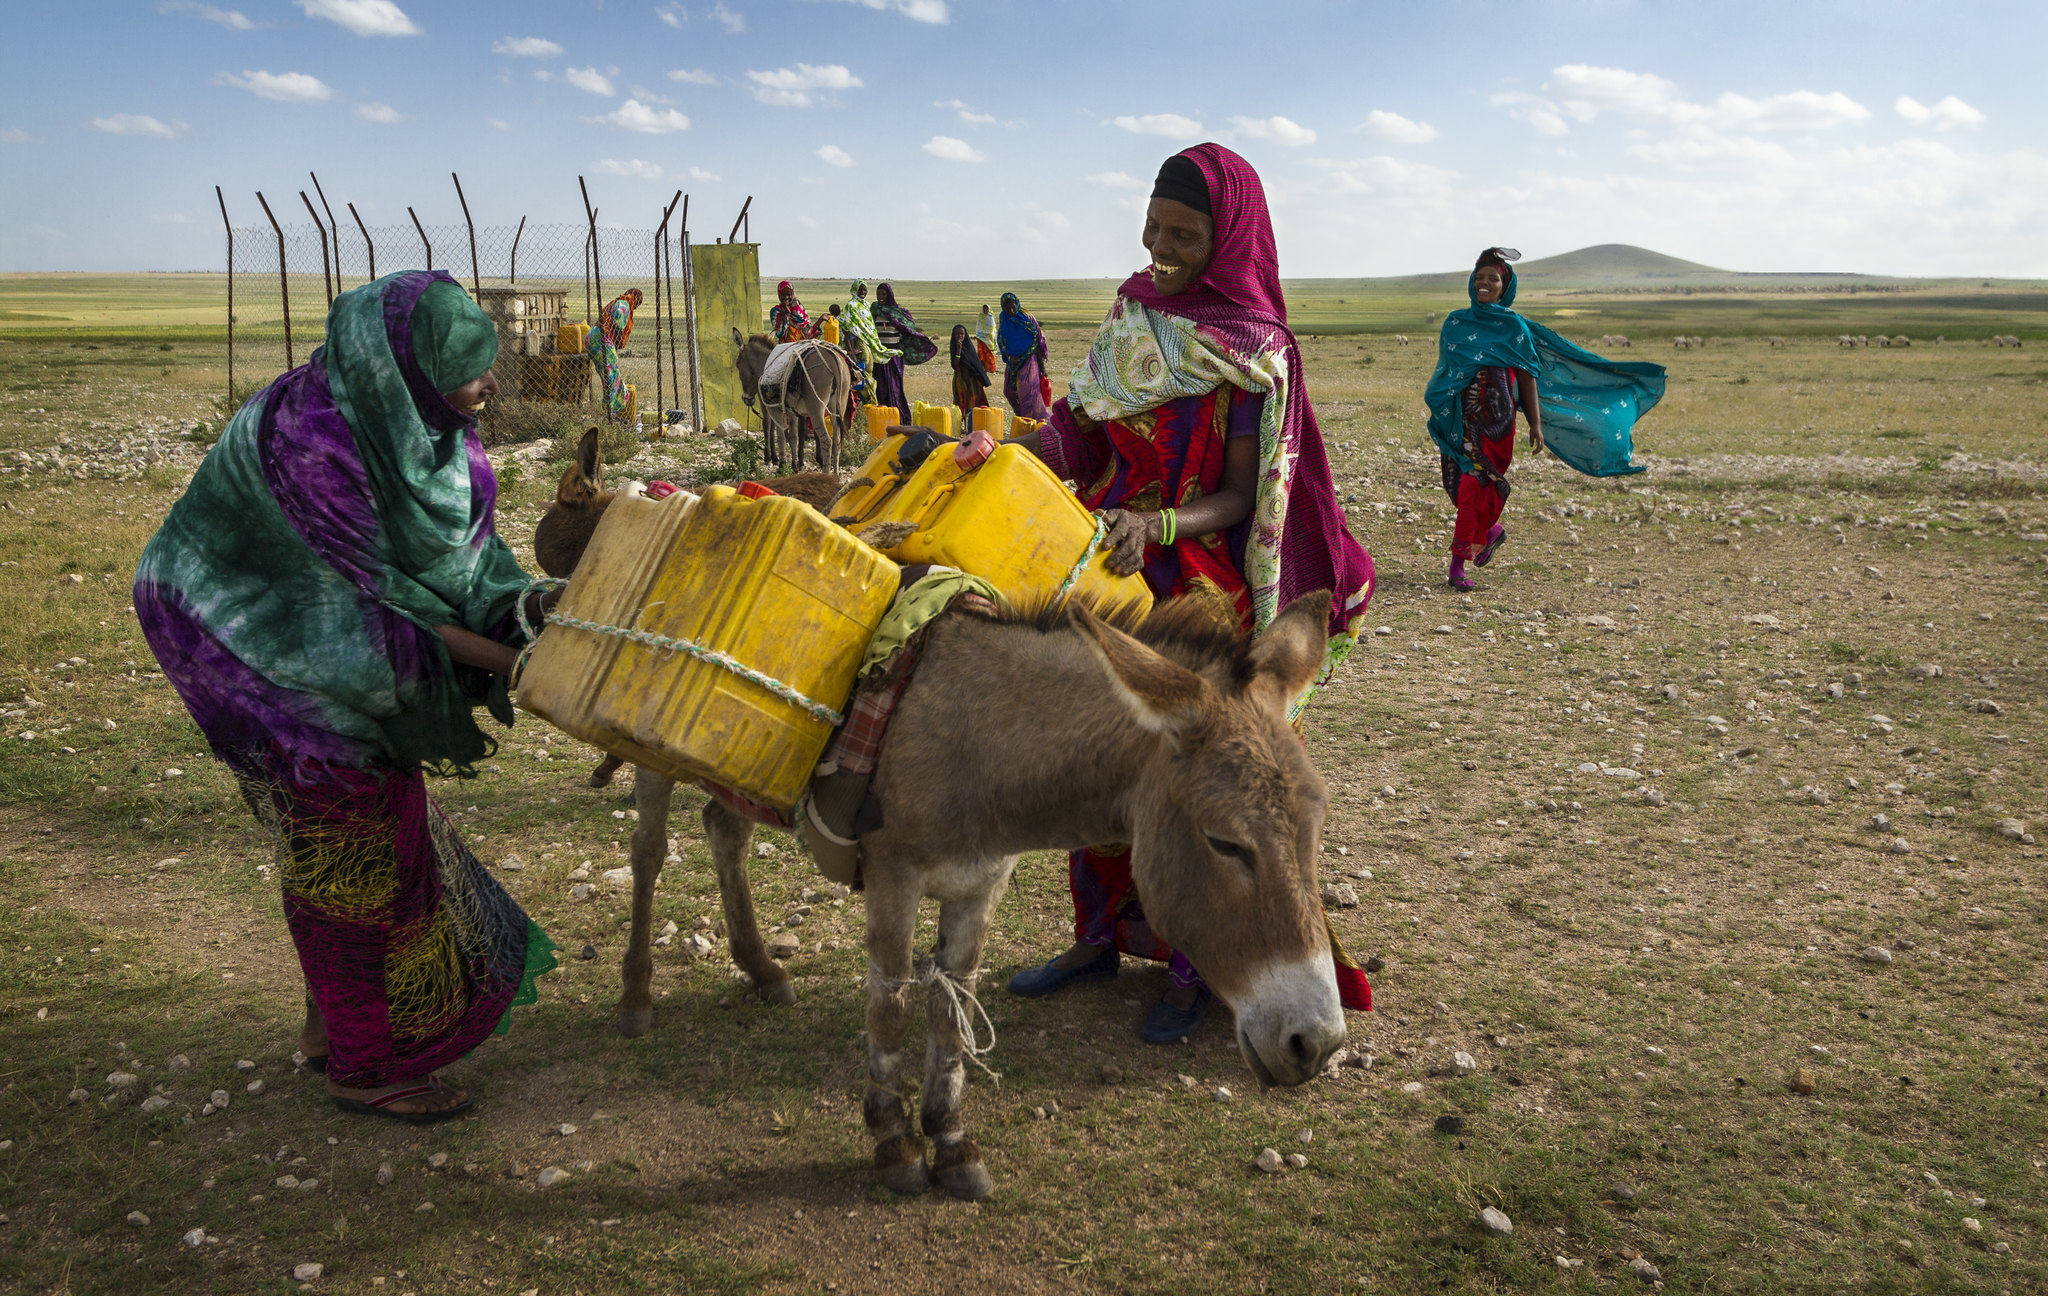 Women work together to tie jerry cans full of water onto a donkey. Rurujis, Somali Region, Ethiopia.